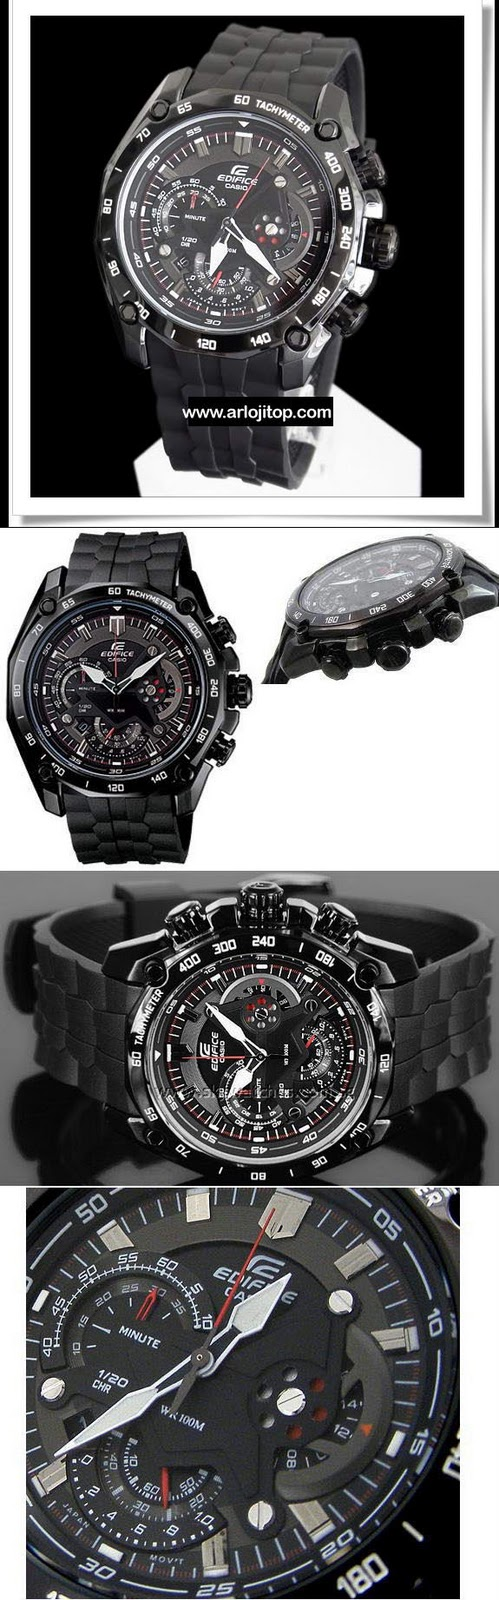 Kios Arloji Casio Edifice For Man Jam Tangan Pria Expedition 6631 Black Orange Triple Time Original Ef 550pb 1a Rubber Rope Rp 1899000